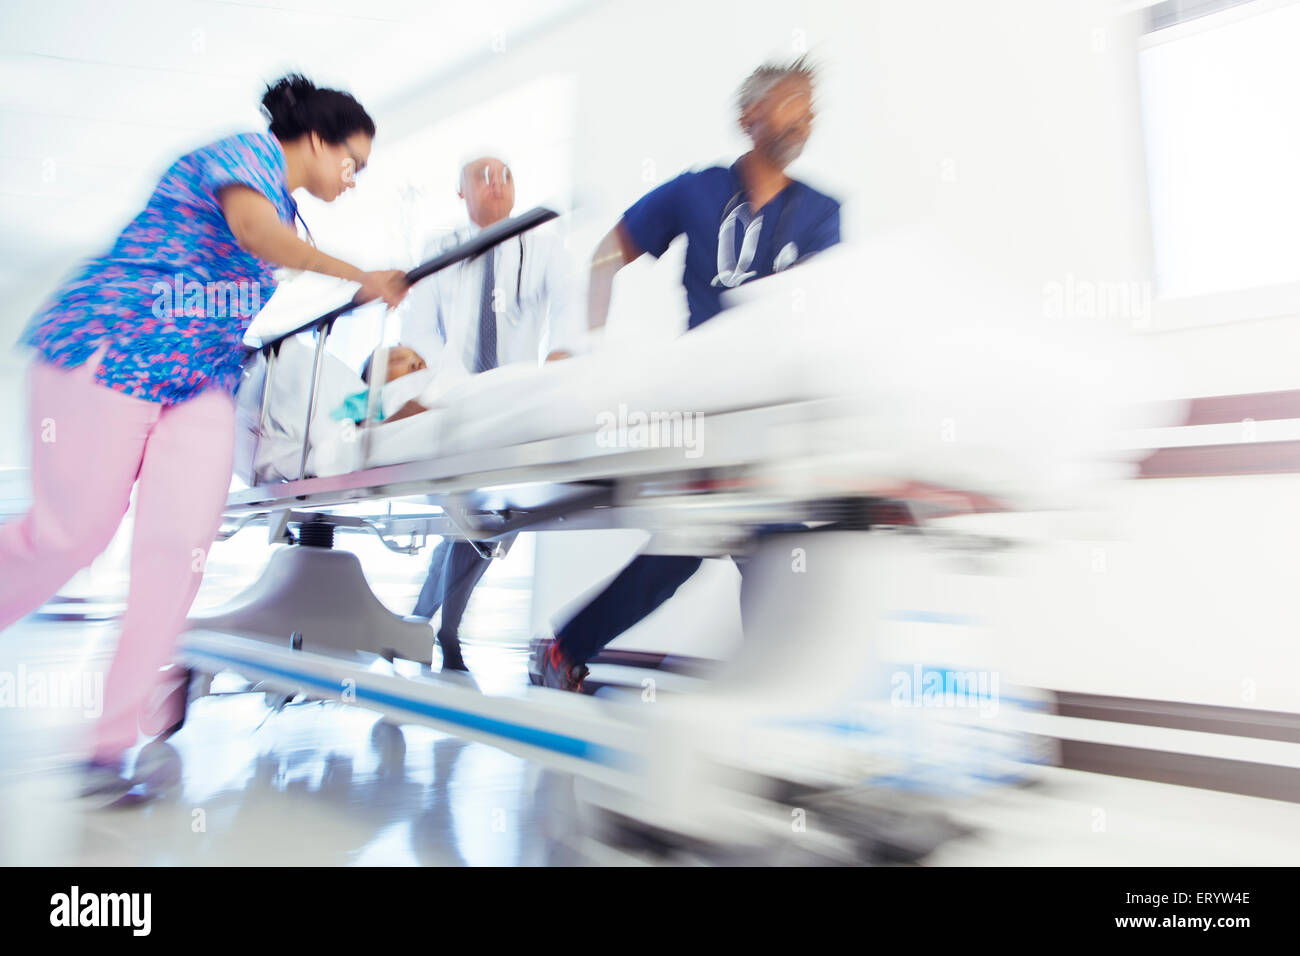 Doctors and nurse rushing patient in stretcher in hospital corridor - Stock Image